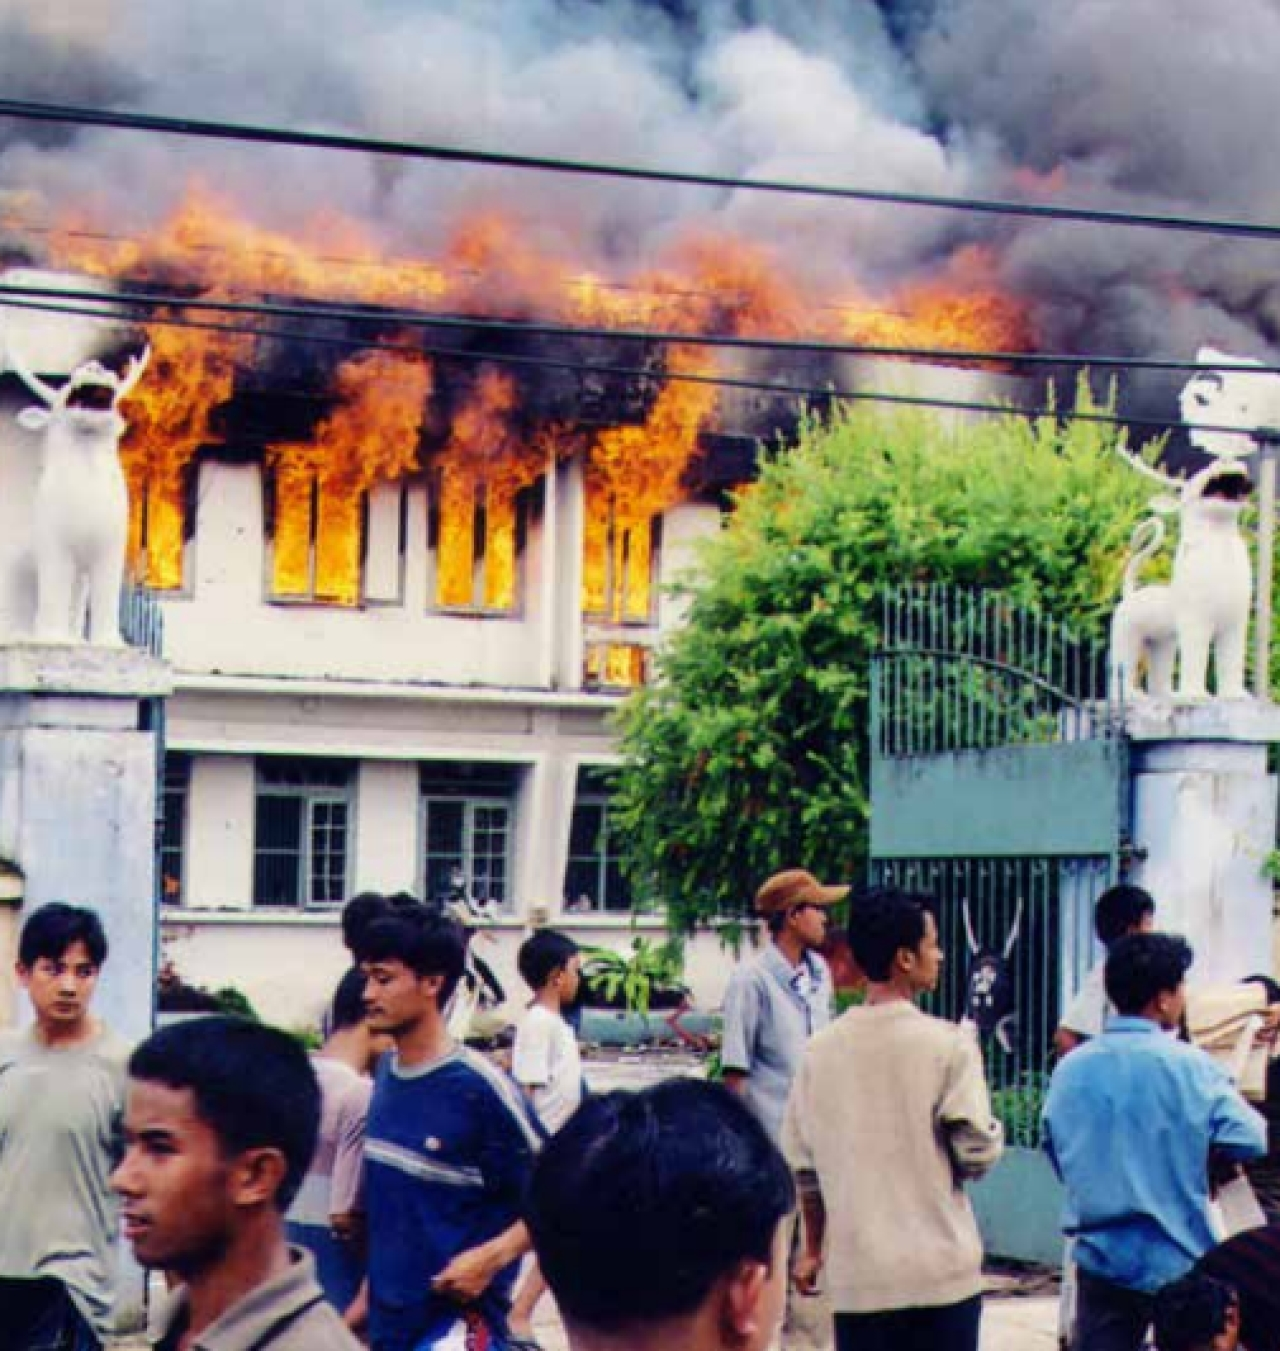 In 2001, the  Imphal Valley  erupted in  protests that  led to the state  Legislative  Assembly being  torched and  reduced to  ashes